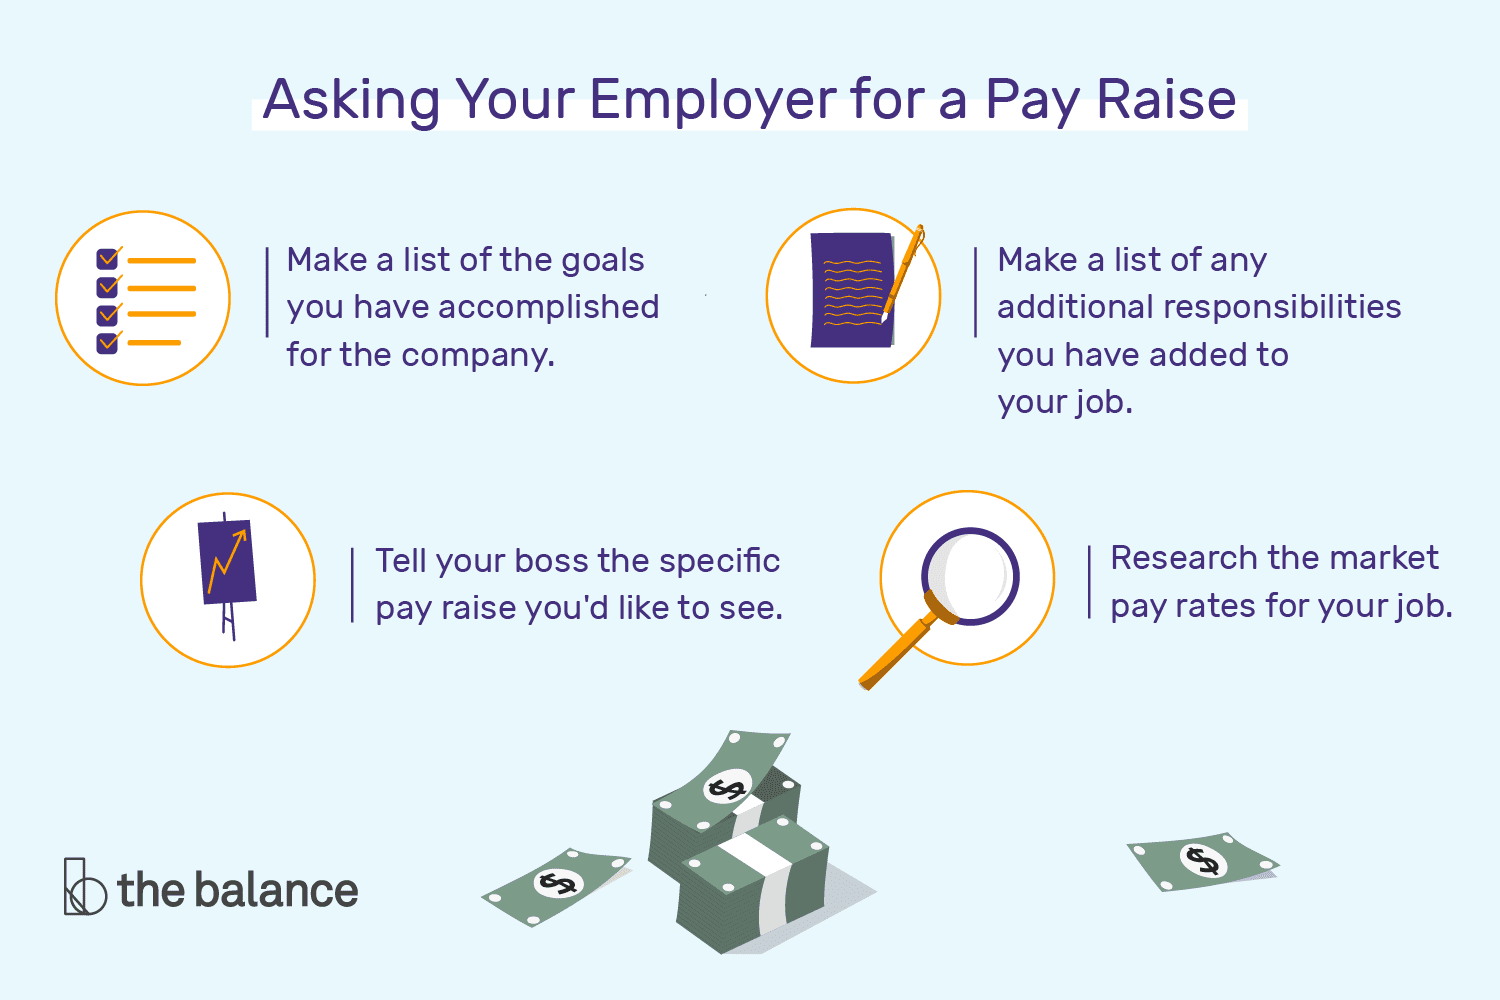 how to ask your employer for a pay raise how to ask your employer for a pay raise